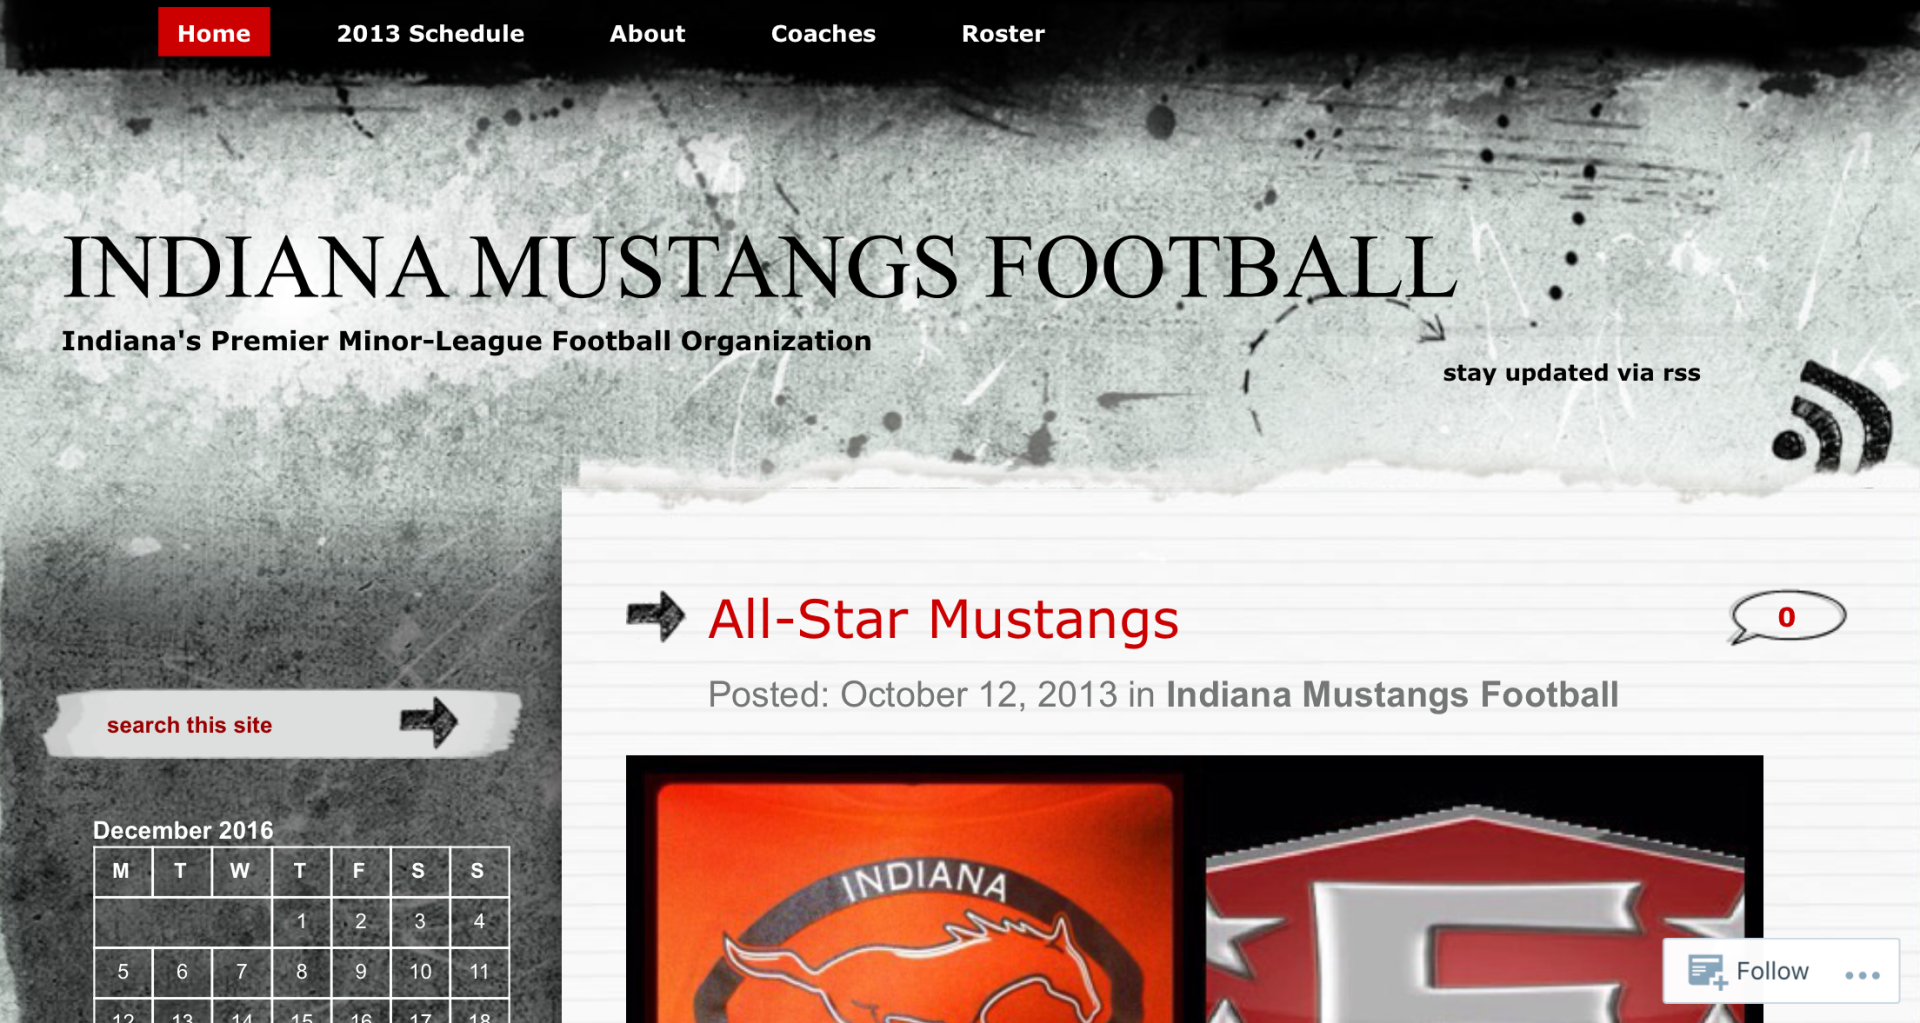 INDIANA MUSTANGS FOOTBALL